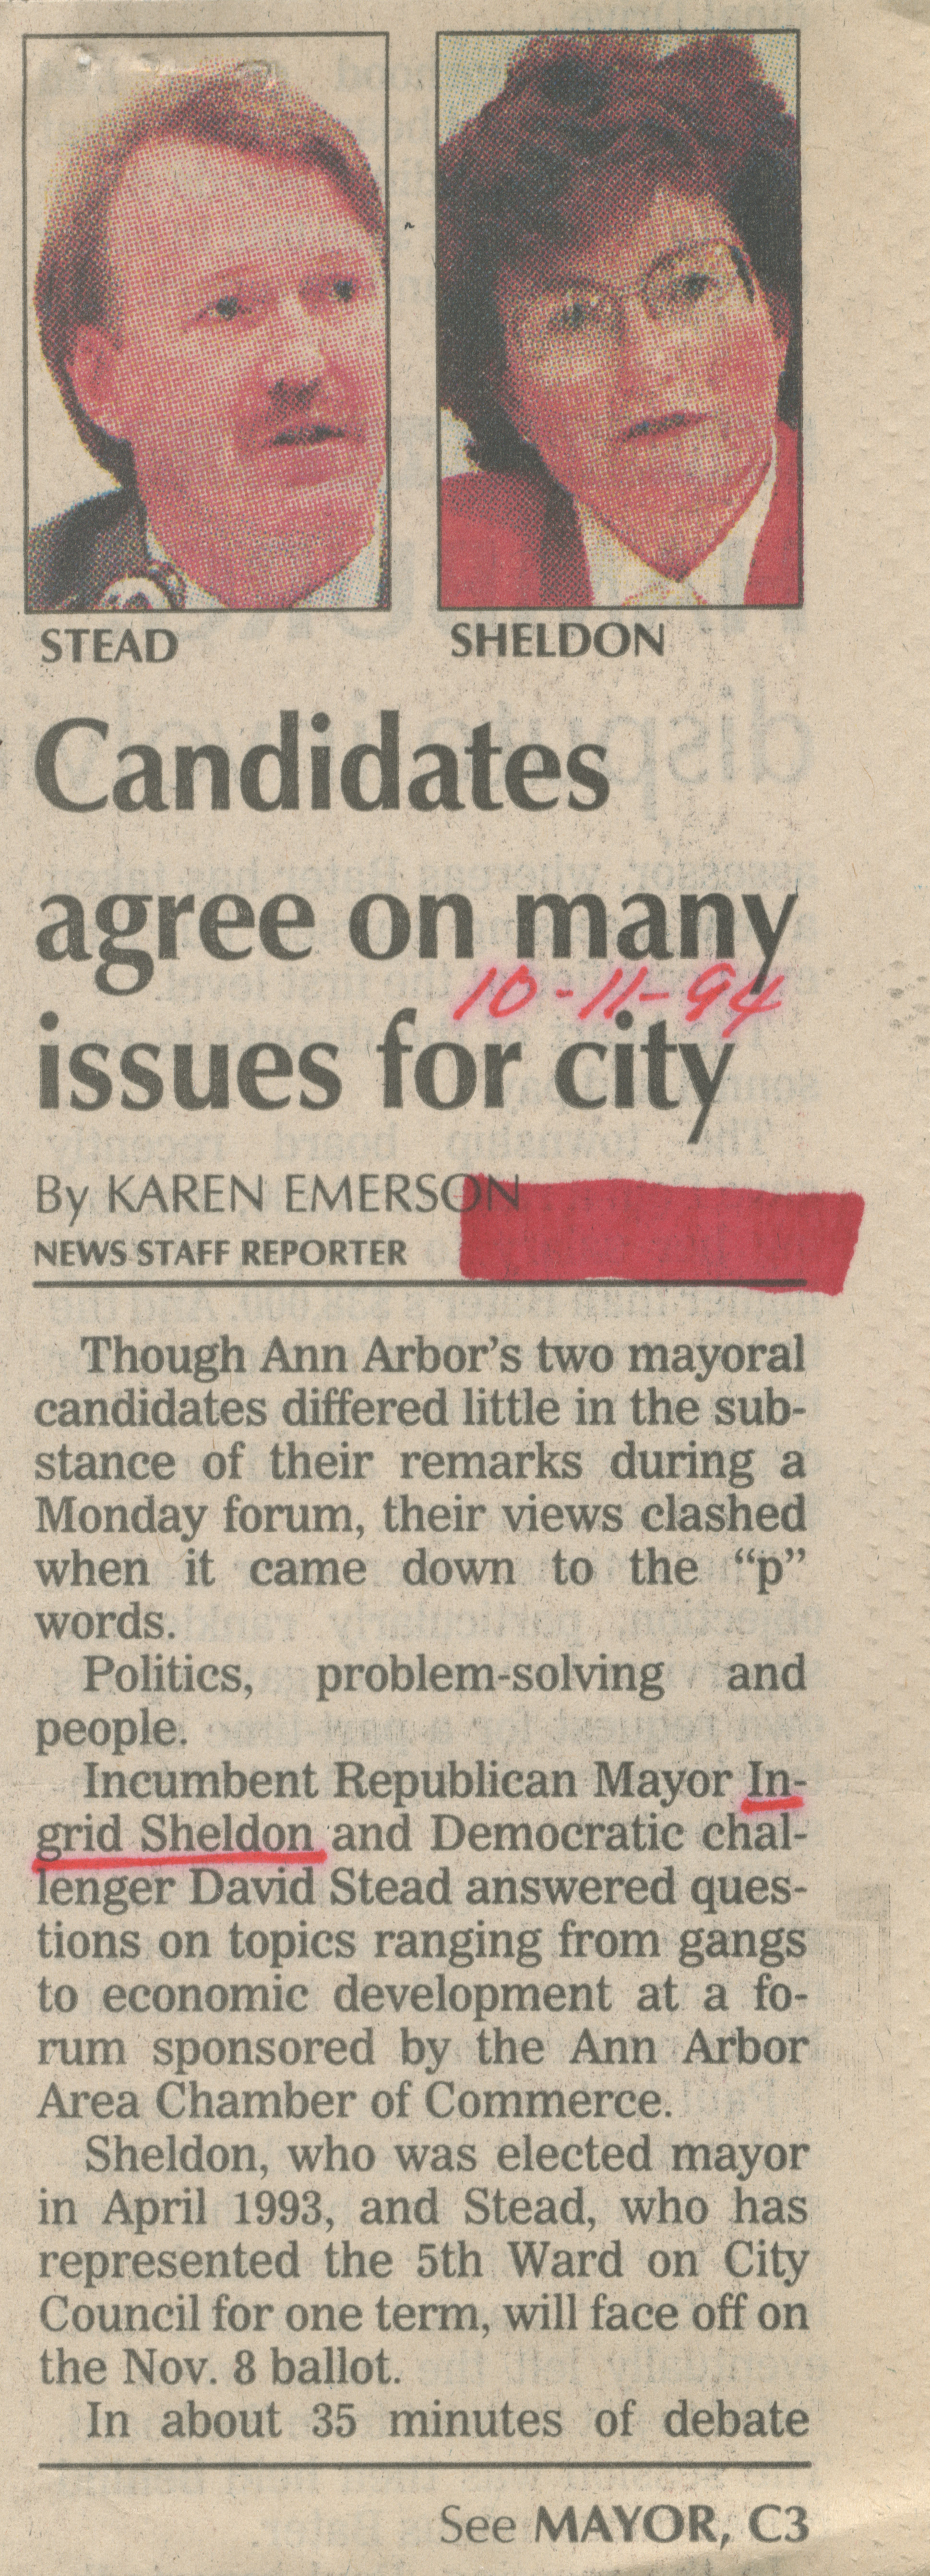 Candidates agree on many issues for city image